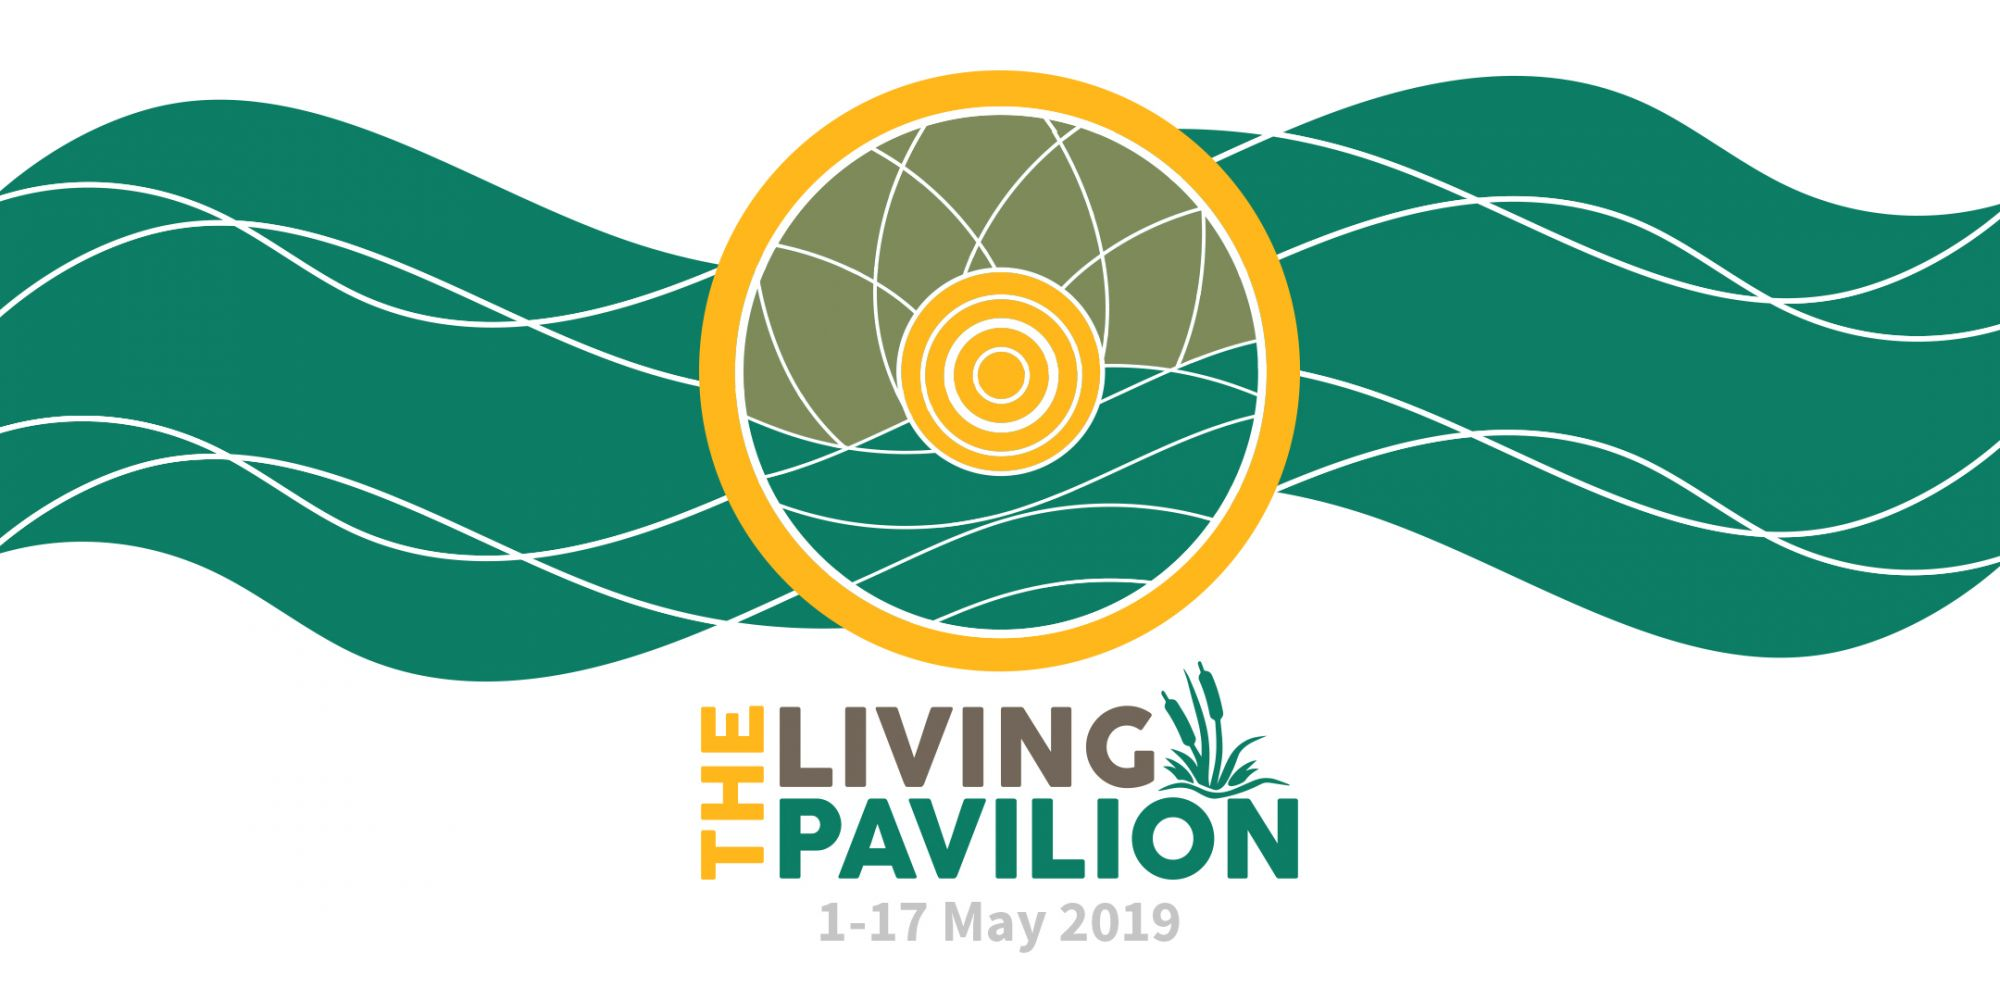 Living Pavilion, 1 of May to 17 May 2019